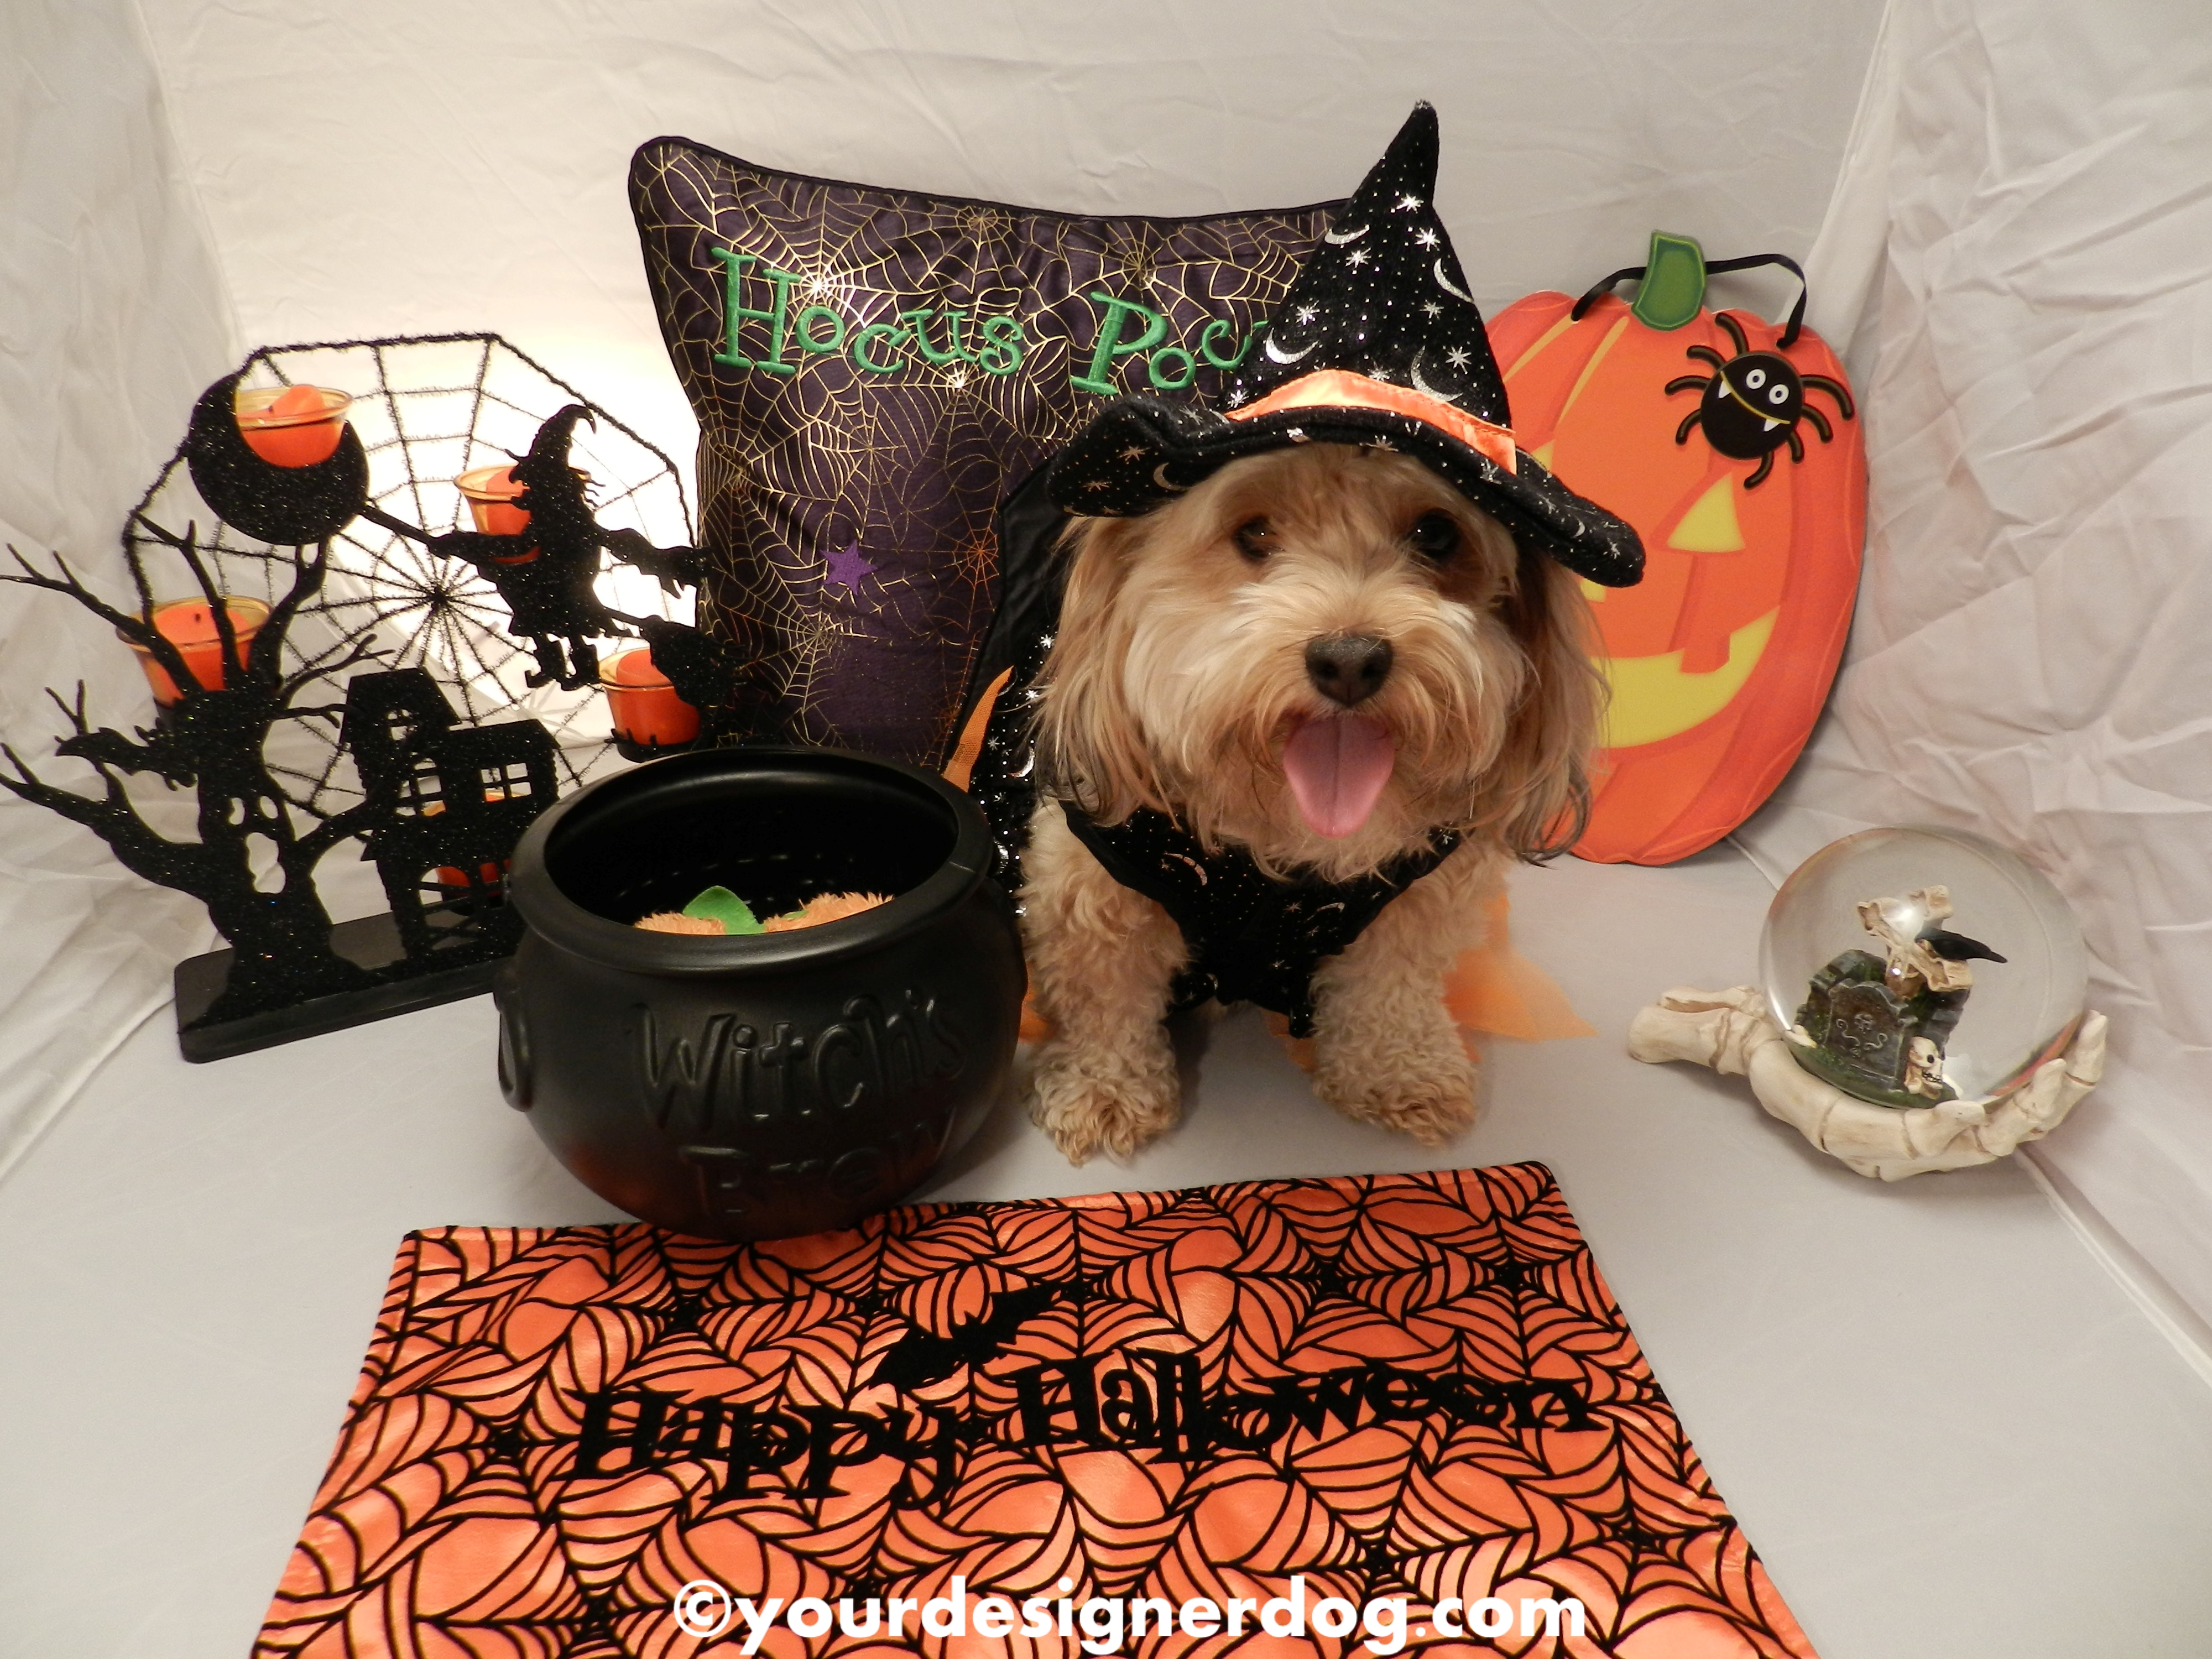 Have a Witchy Halloween!